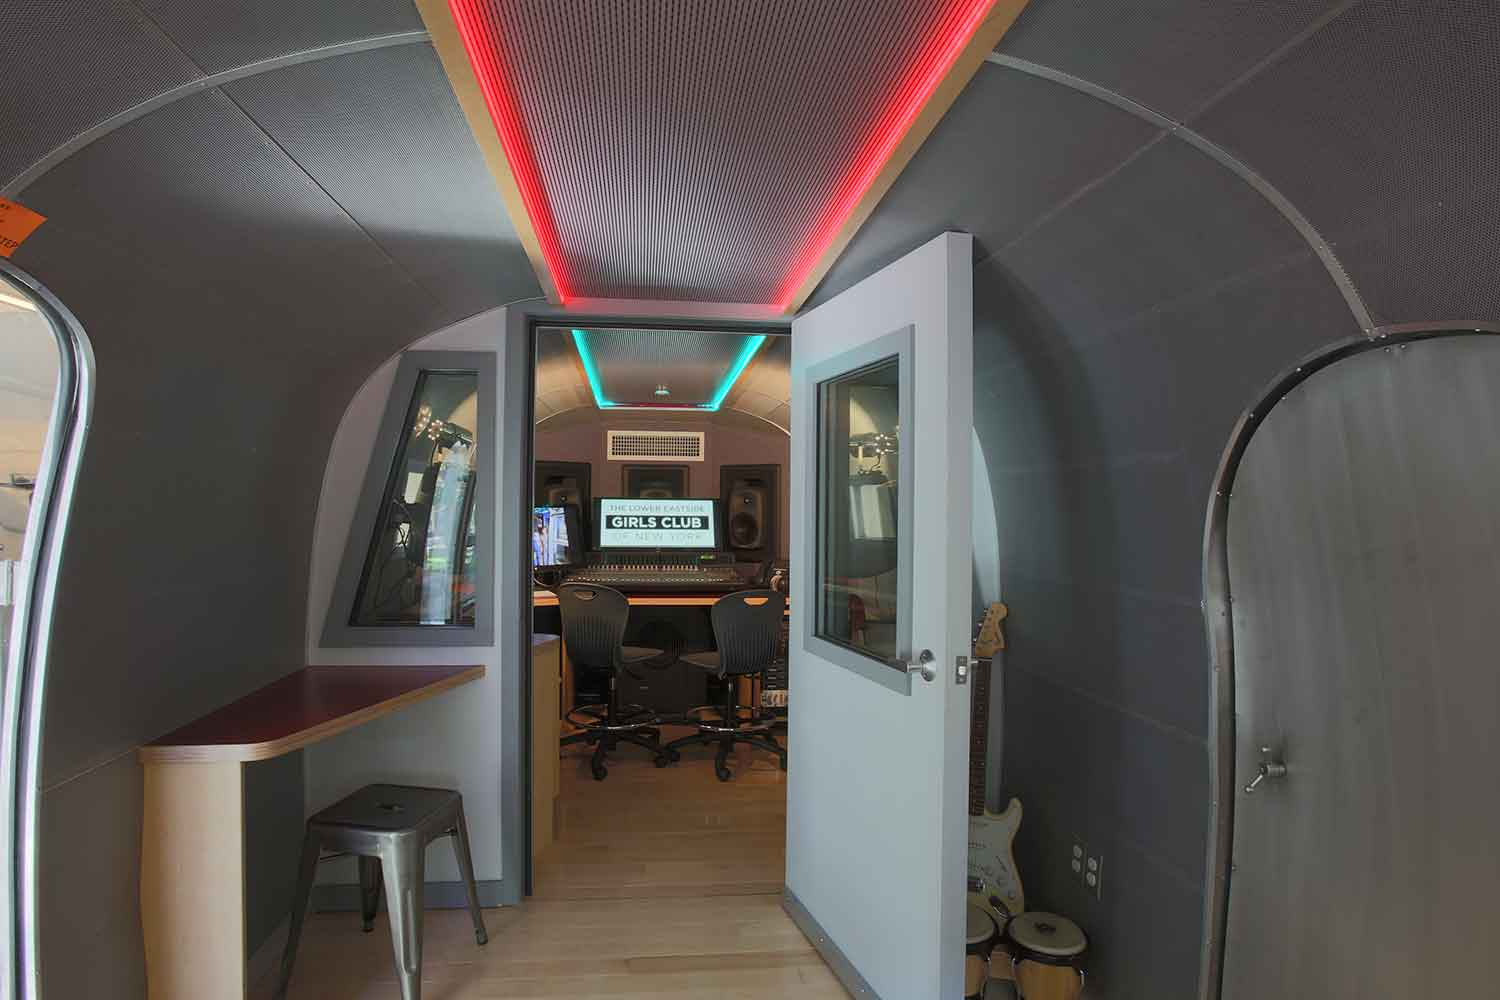 Lower East Side Girls Club Airstream Recording Studio designed by WSDG. Airstream interior acoustic design.